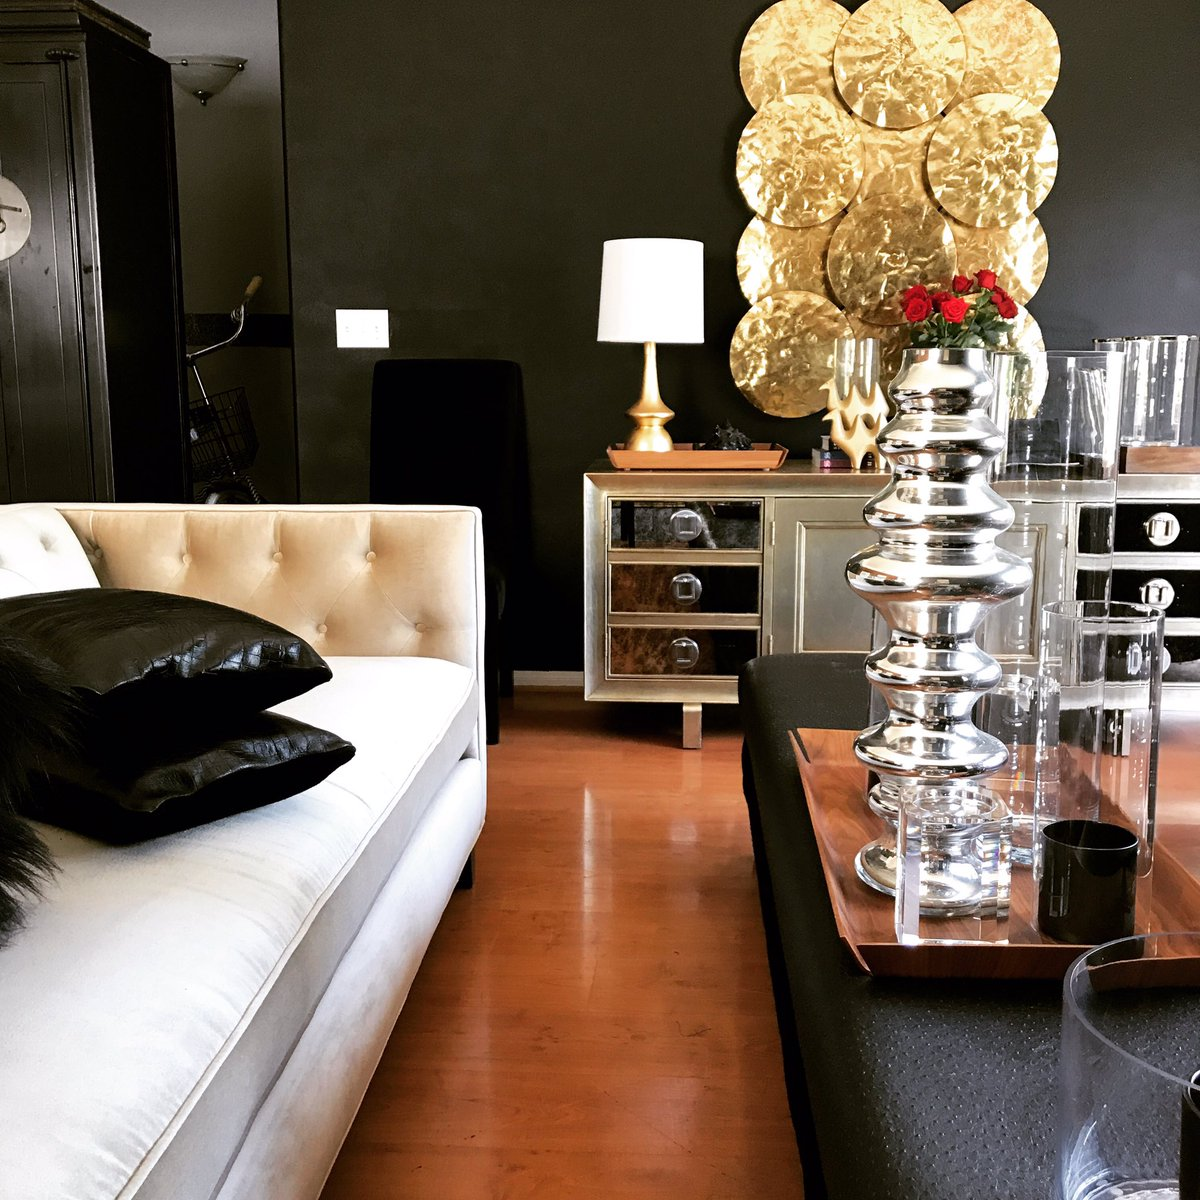 BU Designs  Do you like your accessories.. ON or OFF? Just like your clothes, your furniture needs accessories too.  #budesigns #accessories <br>http://pic.twitter.com/yHEkBc8jmI